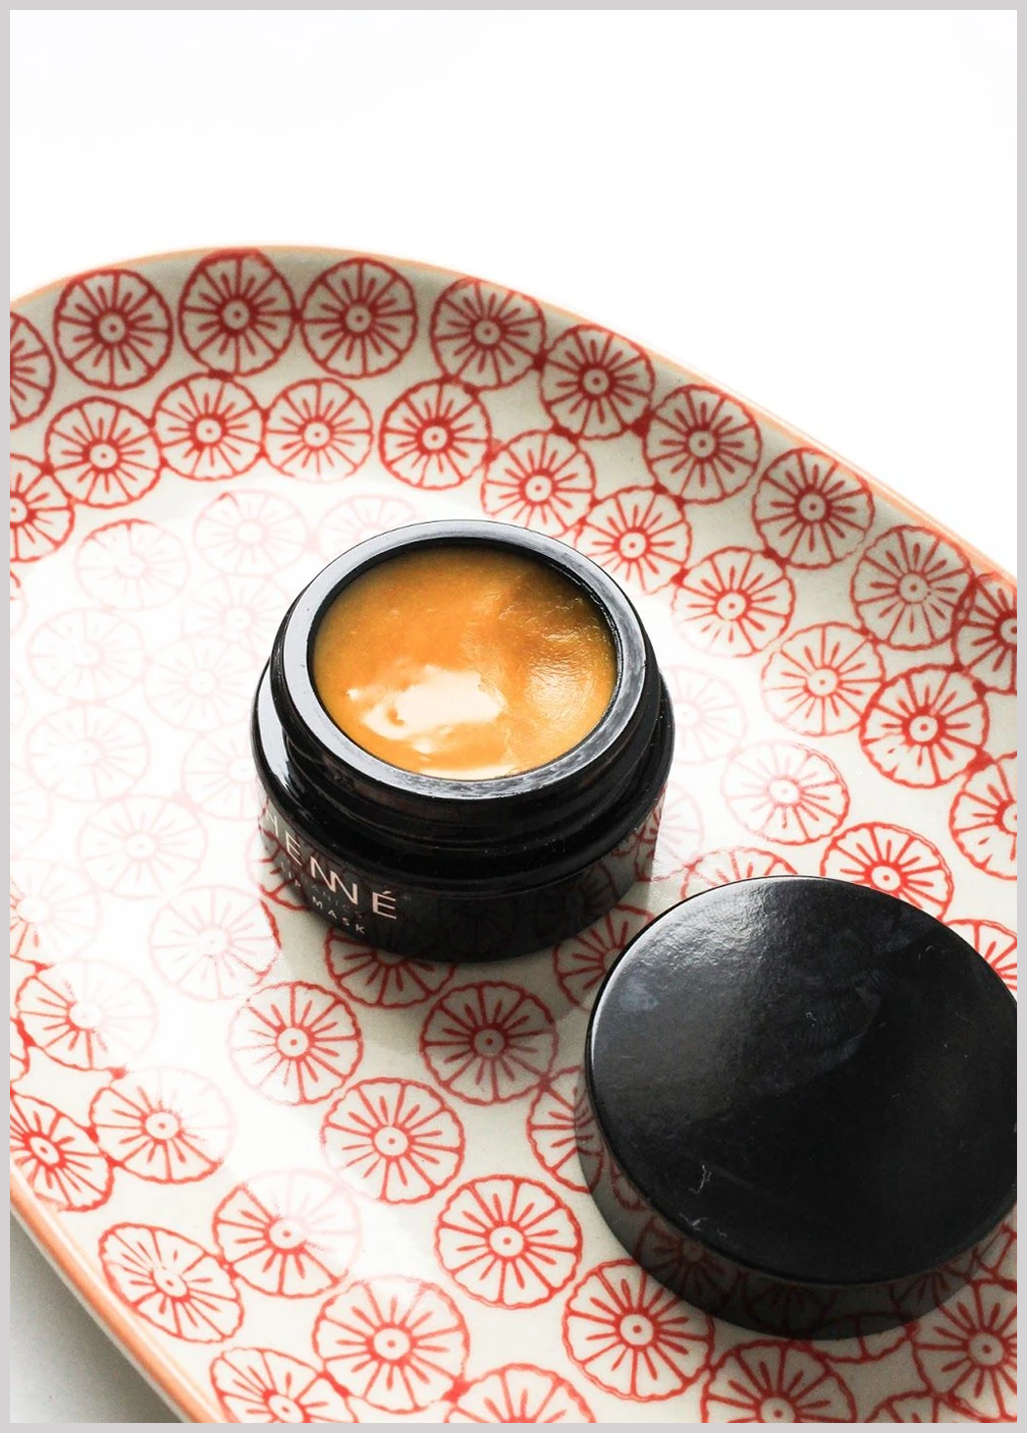 Drift into a self-care reverie as your lips are softly enveloped in this rejuvenating lip mask. Allow nourishing ingredients like sea buckthorn and evening primrose to help restore and soothe your lips, while a fresh citrus scent enlivens your senses. Not tested on animals Ingredients: ORGANIC ROSA CANINA (ROSEHIP) SEED OIL, ORGANIC PERSEA AMERICANA (AVOCADO) OIL, ORGANIC CERA ALBA (BEESWAX), ORGANIC SIMMONDSIA CHINENSIS (JOJOBA) SEED OIL, ORGANIC PUNICA GRANATUM (POMEGRANATE) SEED OIL, ORGANIC